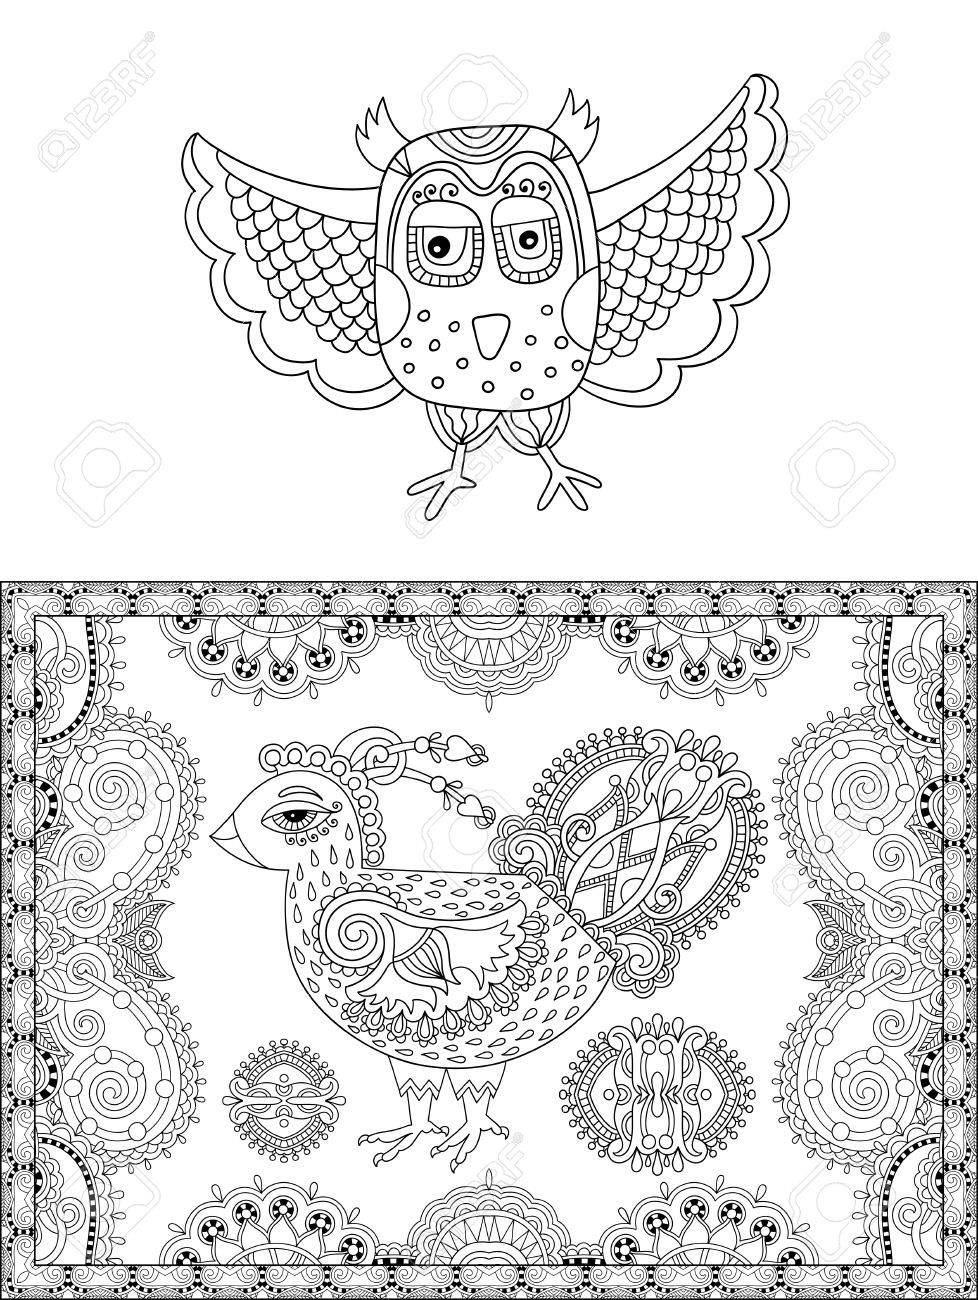 Original Black And White Line Drawing Page Of Coloring Book Bird Flower Joy To Older